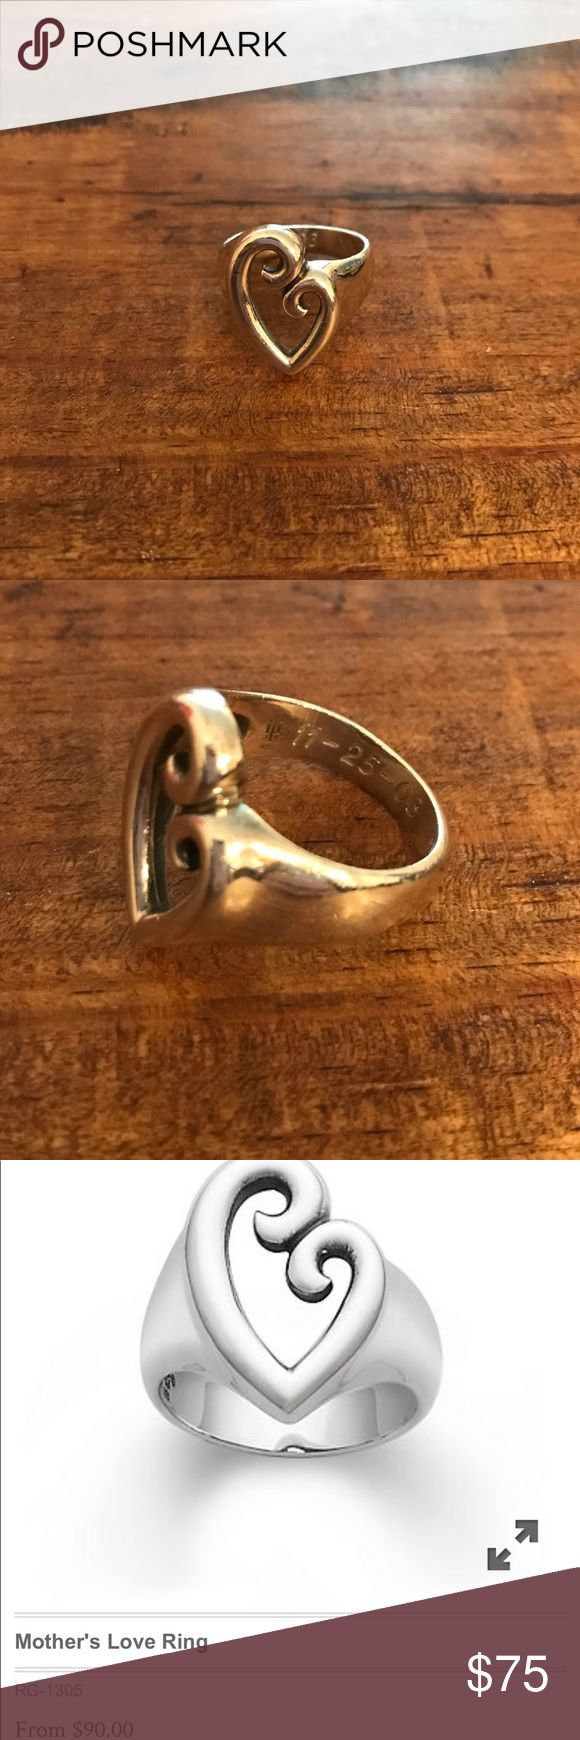 James Avery Ring Mothers love ring. The ring is engraved on the inside. James Avery Jewelry Rings